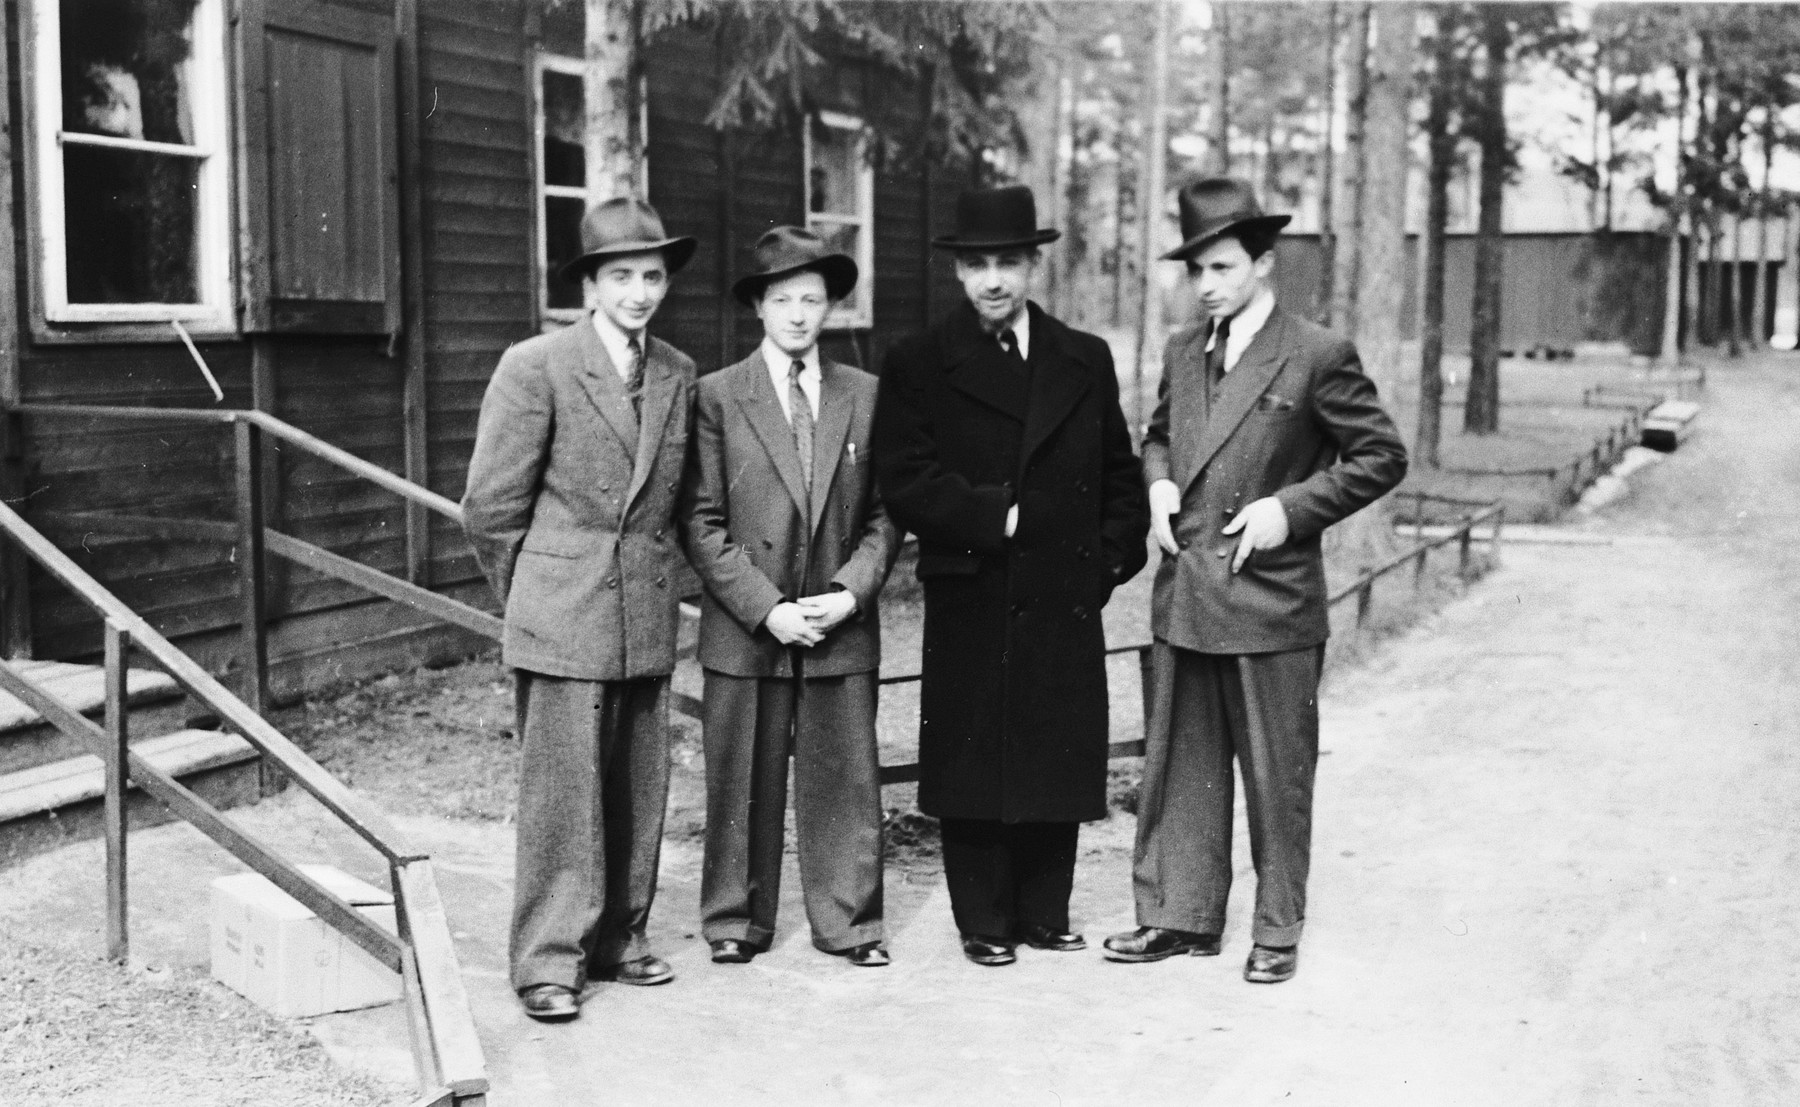 Four religious Jewish displaced persons stand in front of a barracks in a kosher center in Sweden.  Among them is a Romanian rabbi who assisted the others in getting visas.